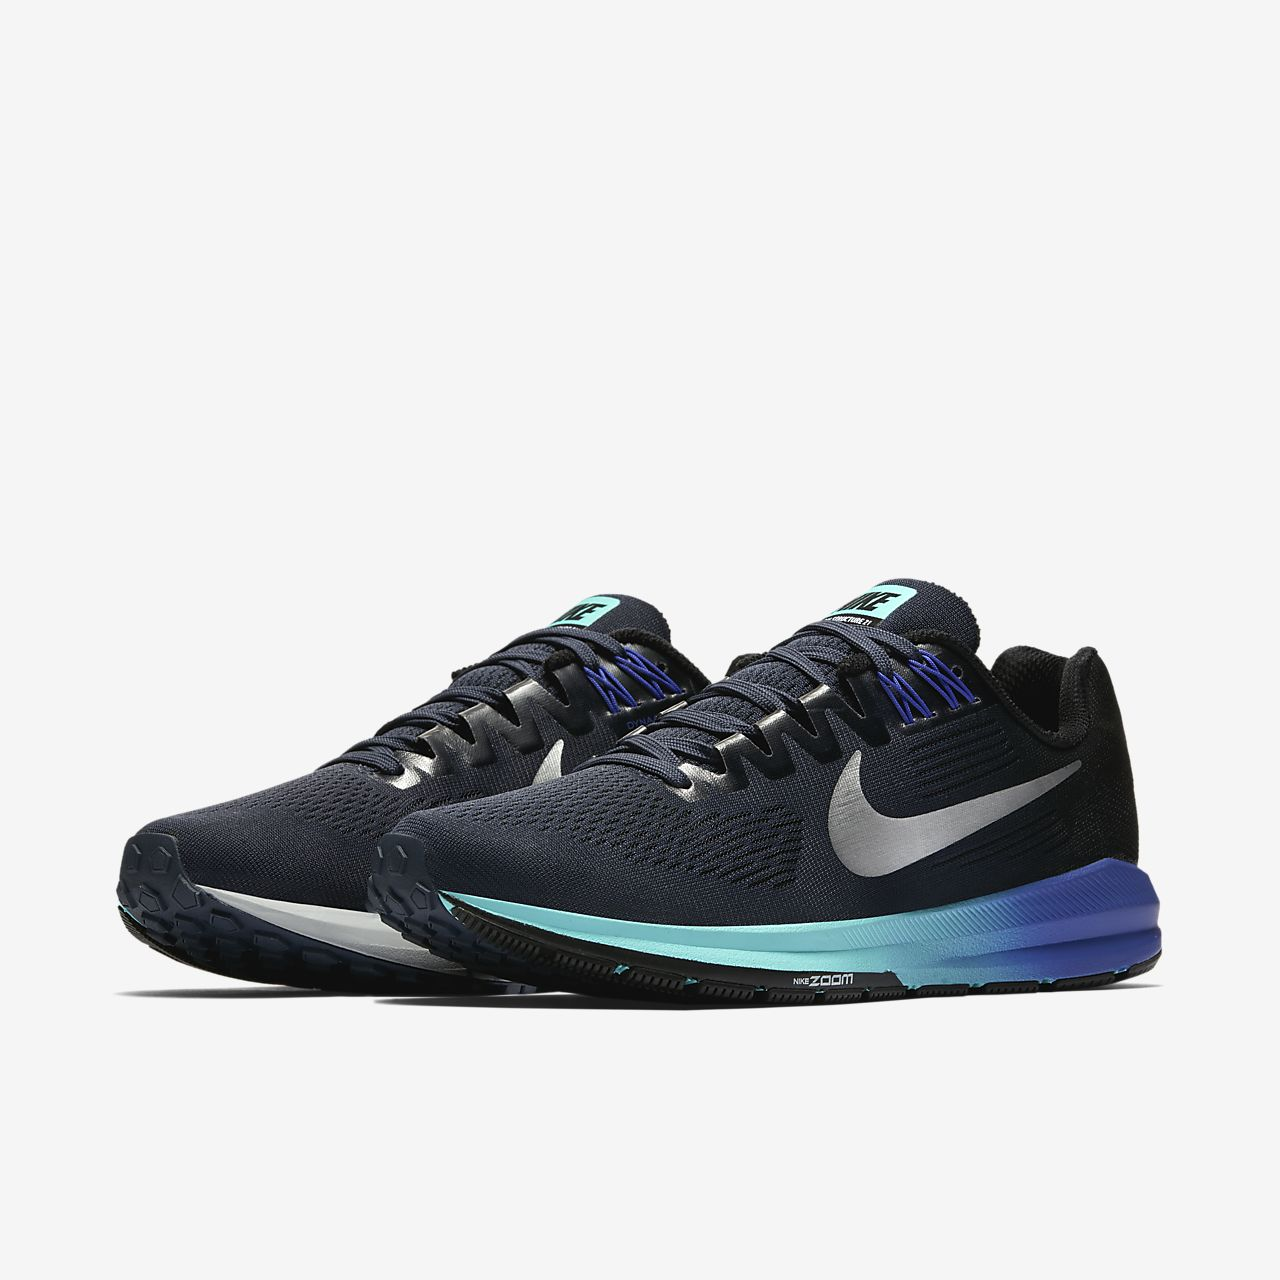 c57159afab2 Nike Air Zoom Structure 21 Women s Running Shoe. Nike.com BE